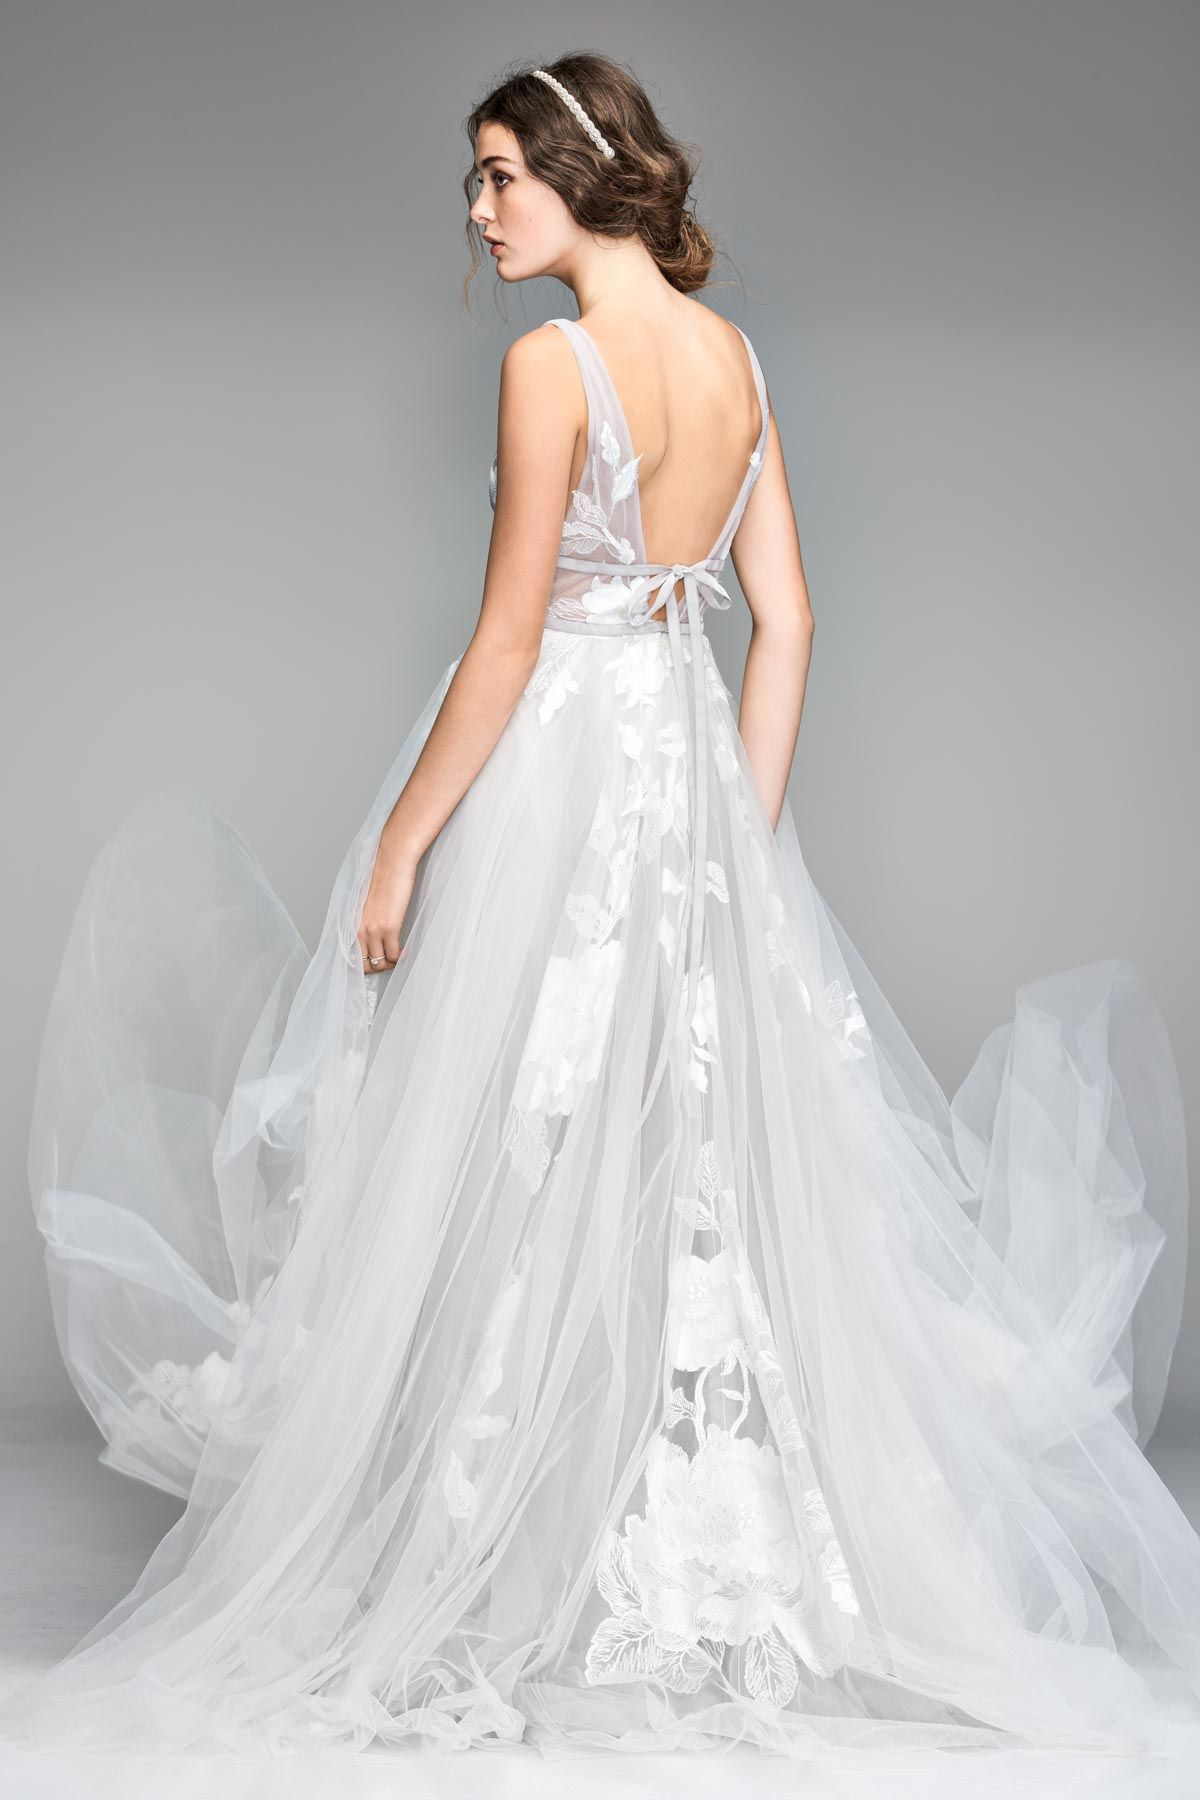 Galatea wedding dress by Willowby